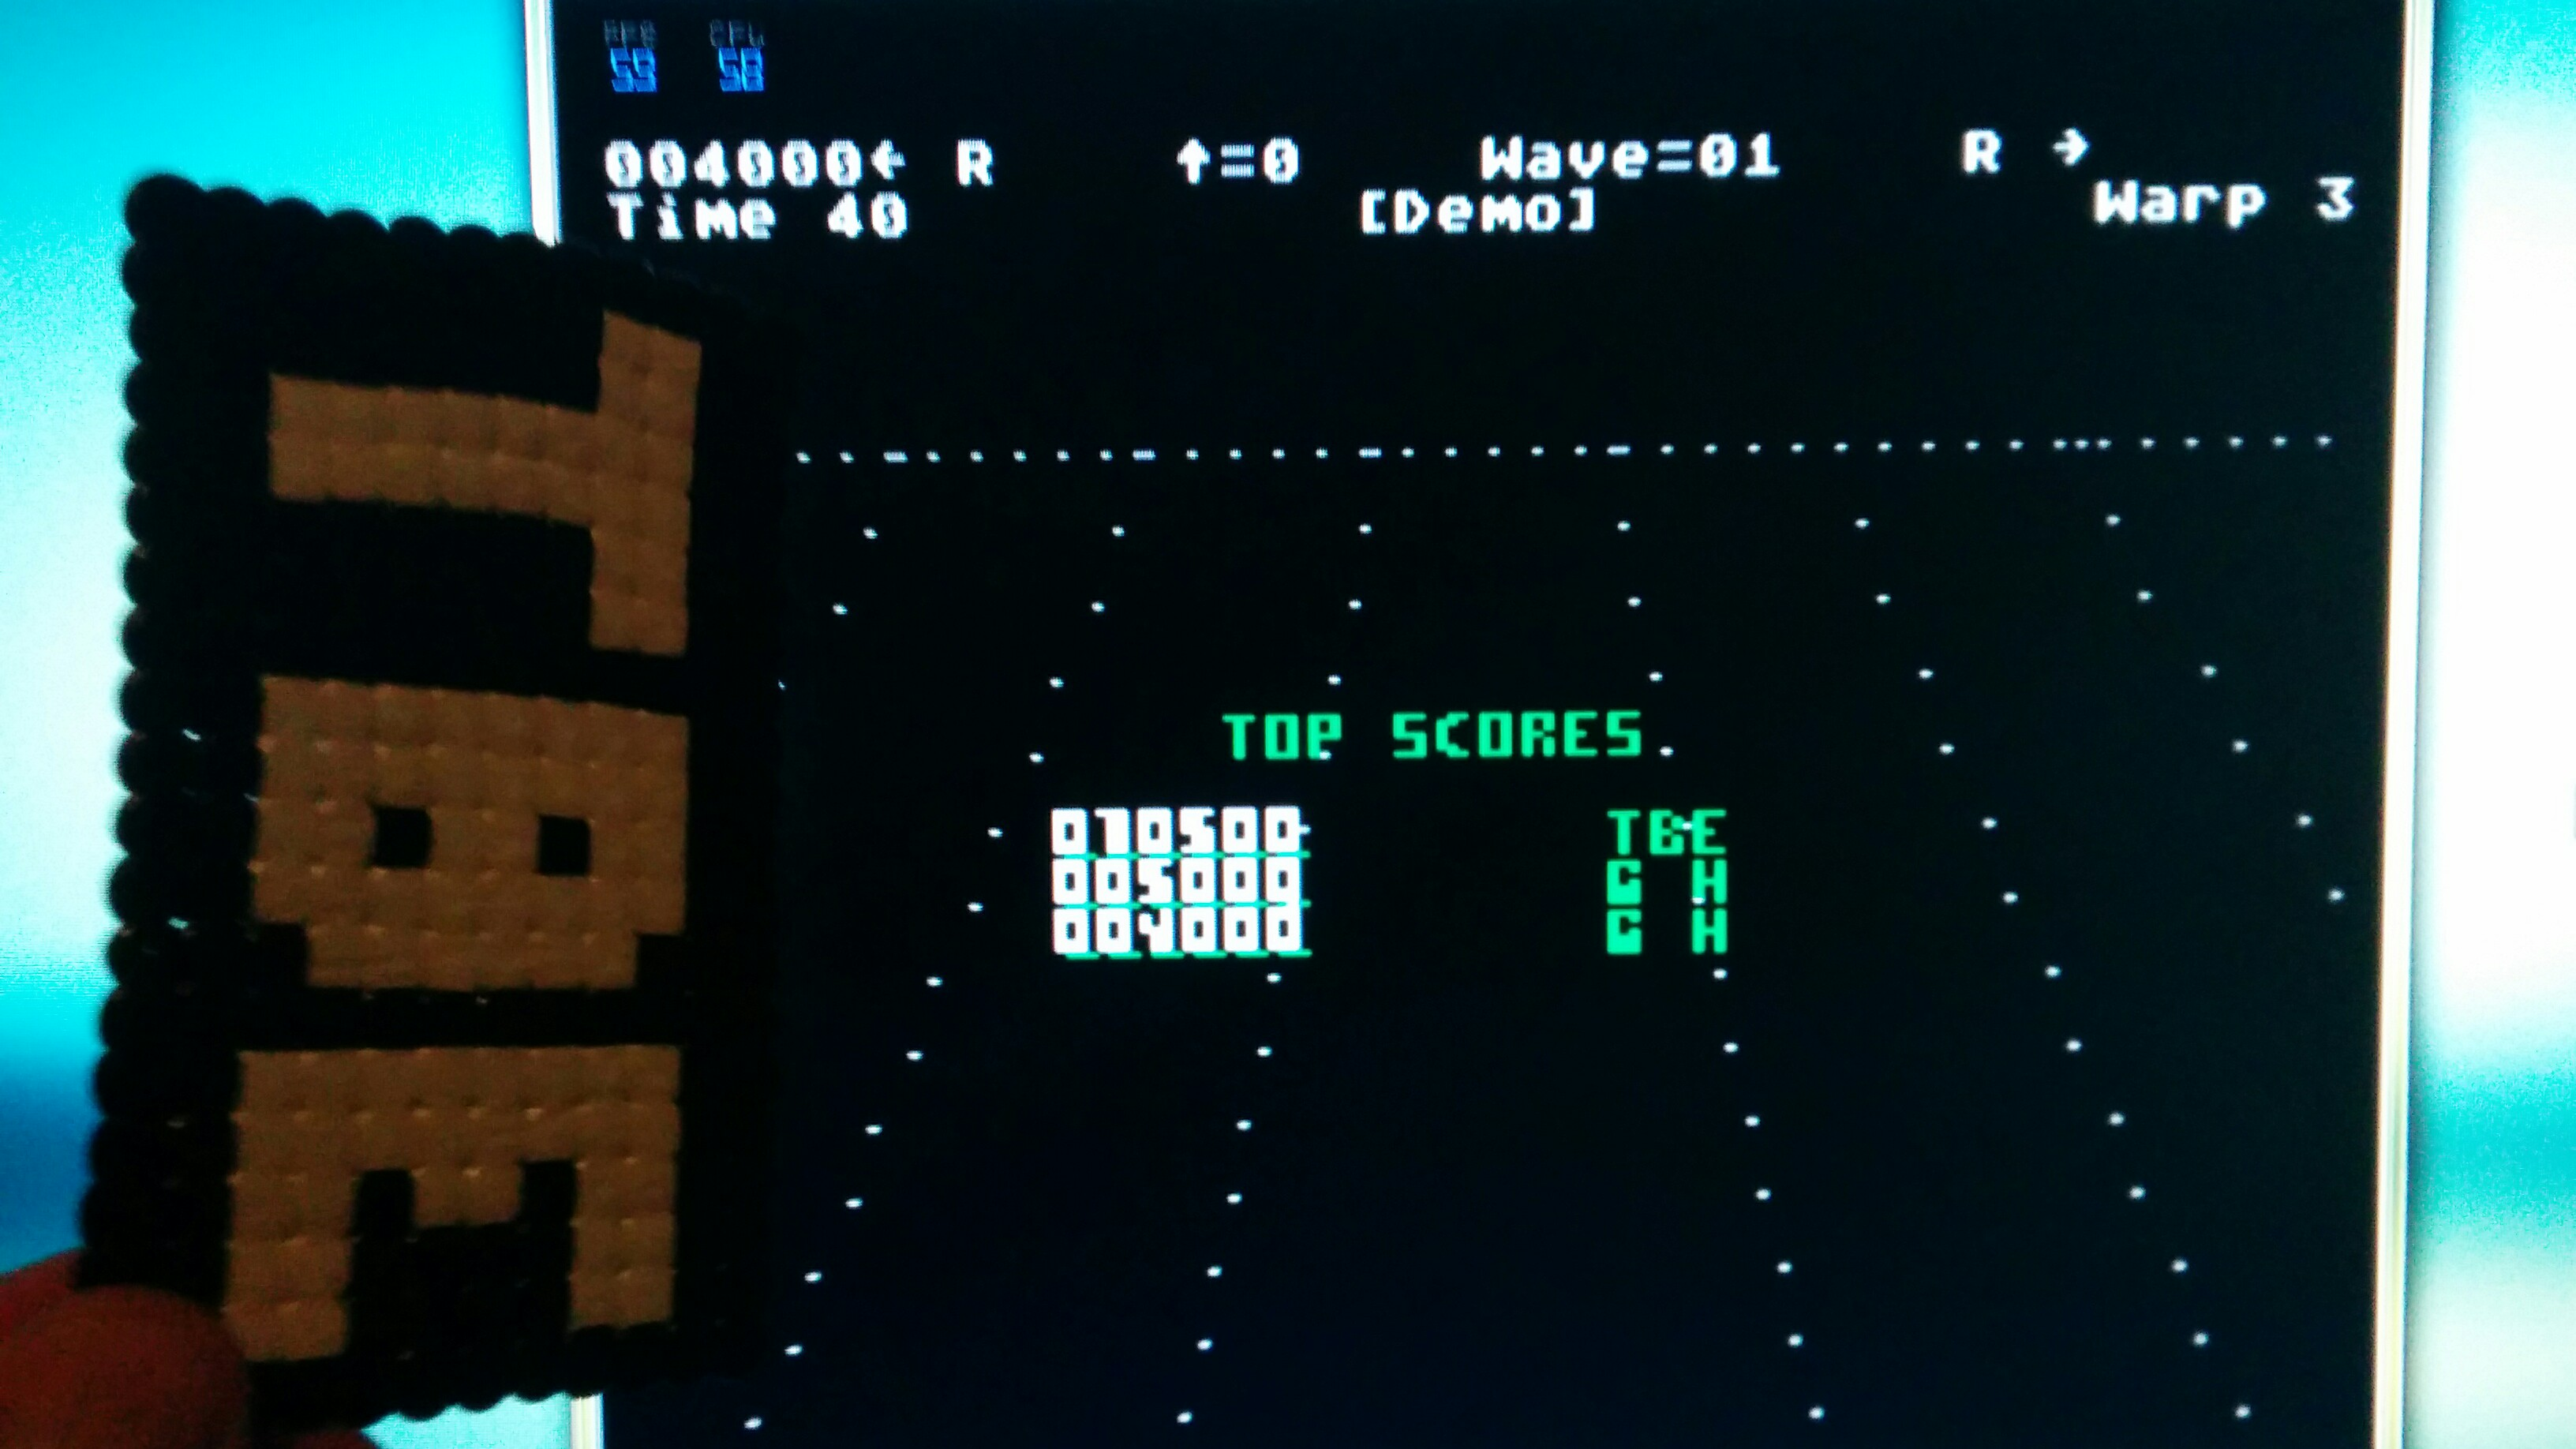 Sixx: Juno First (Atari 400/800/XL/XE Emulated) 70,500 points on 2014-10-08 17:09:46